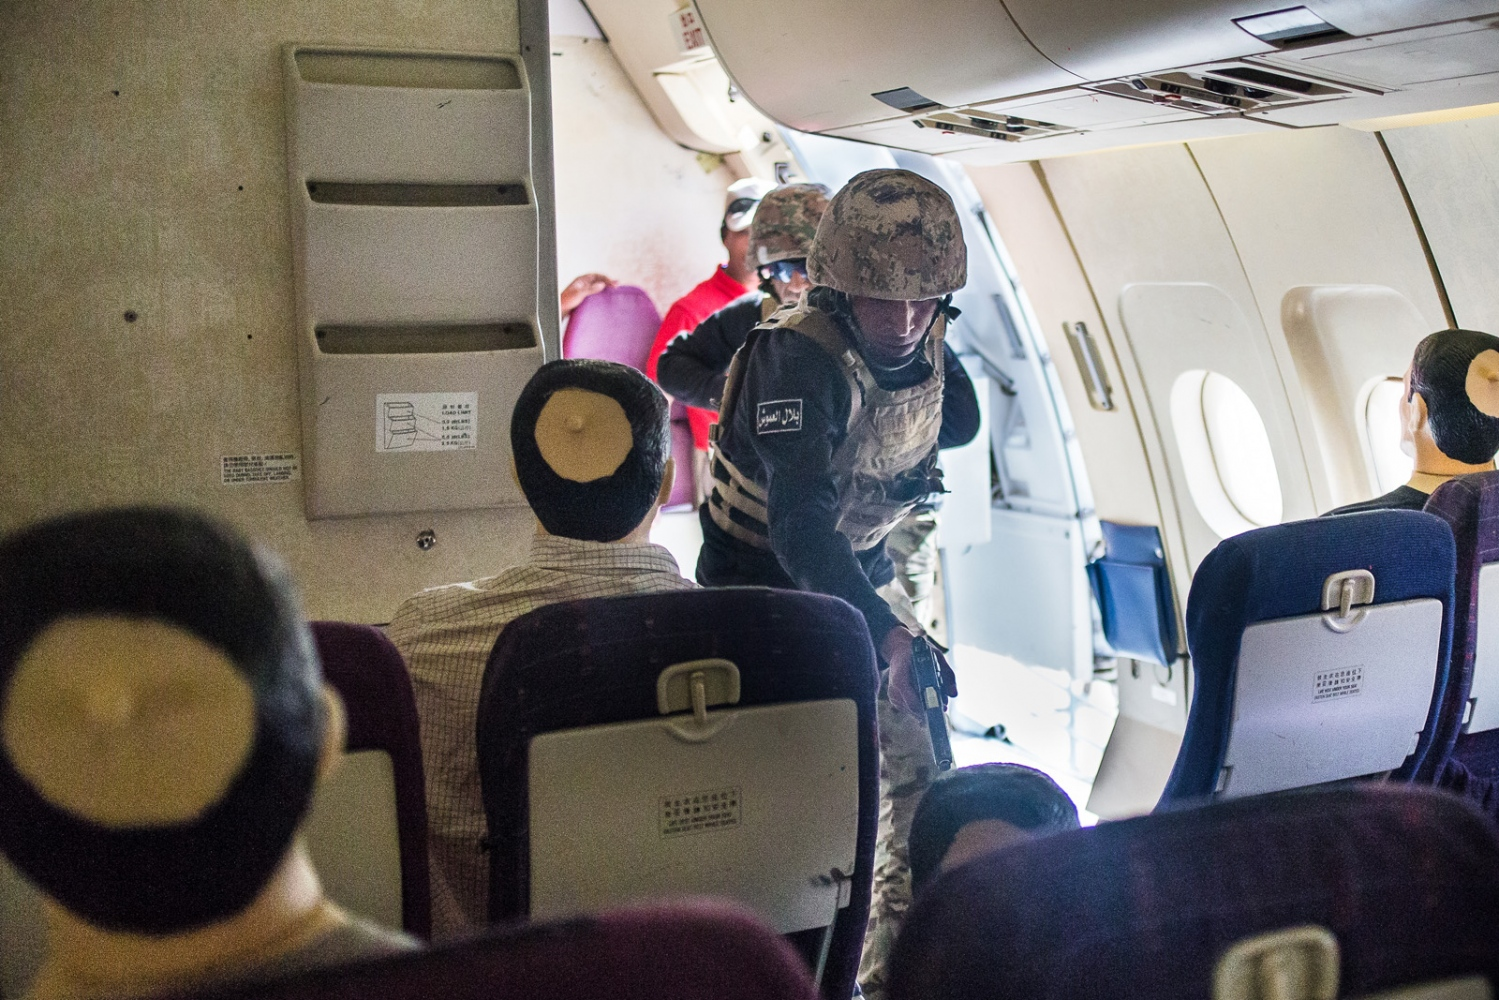 The Jordan team participates in the Airbus seizure event, demonstrating how to execute a target onboard a passenger aircraft. The exercise was part of the seventh annual Warrior Competition at the King Abdullah II Special Operations Training Center near Amman, Jordan, on April 21, 2015.